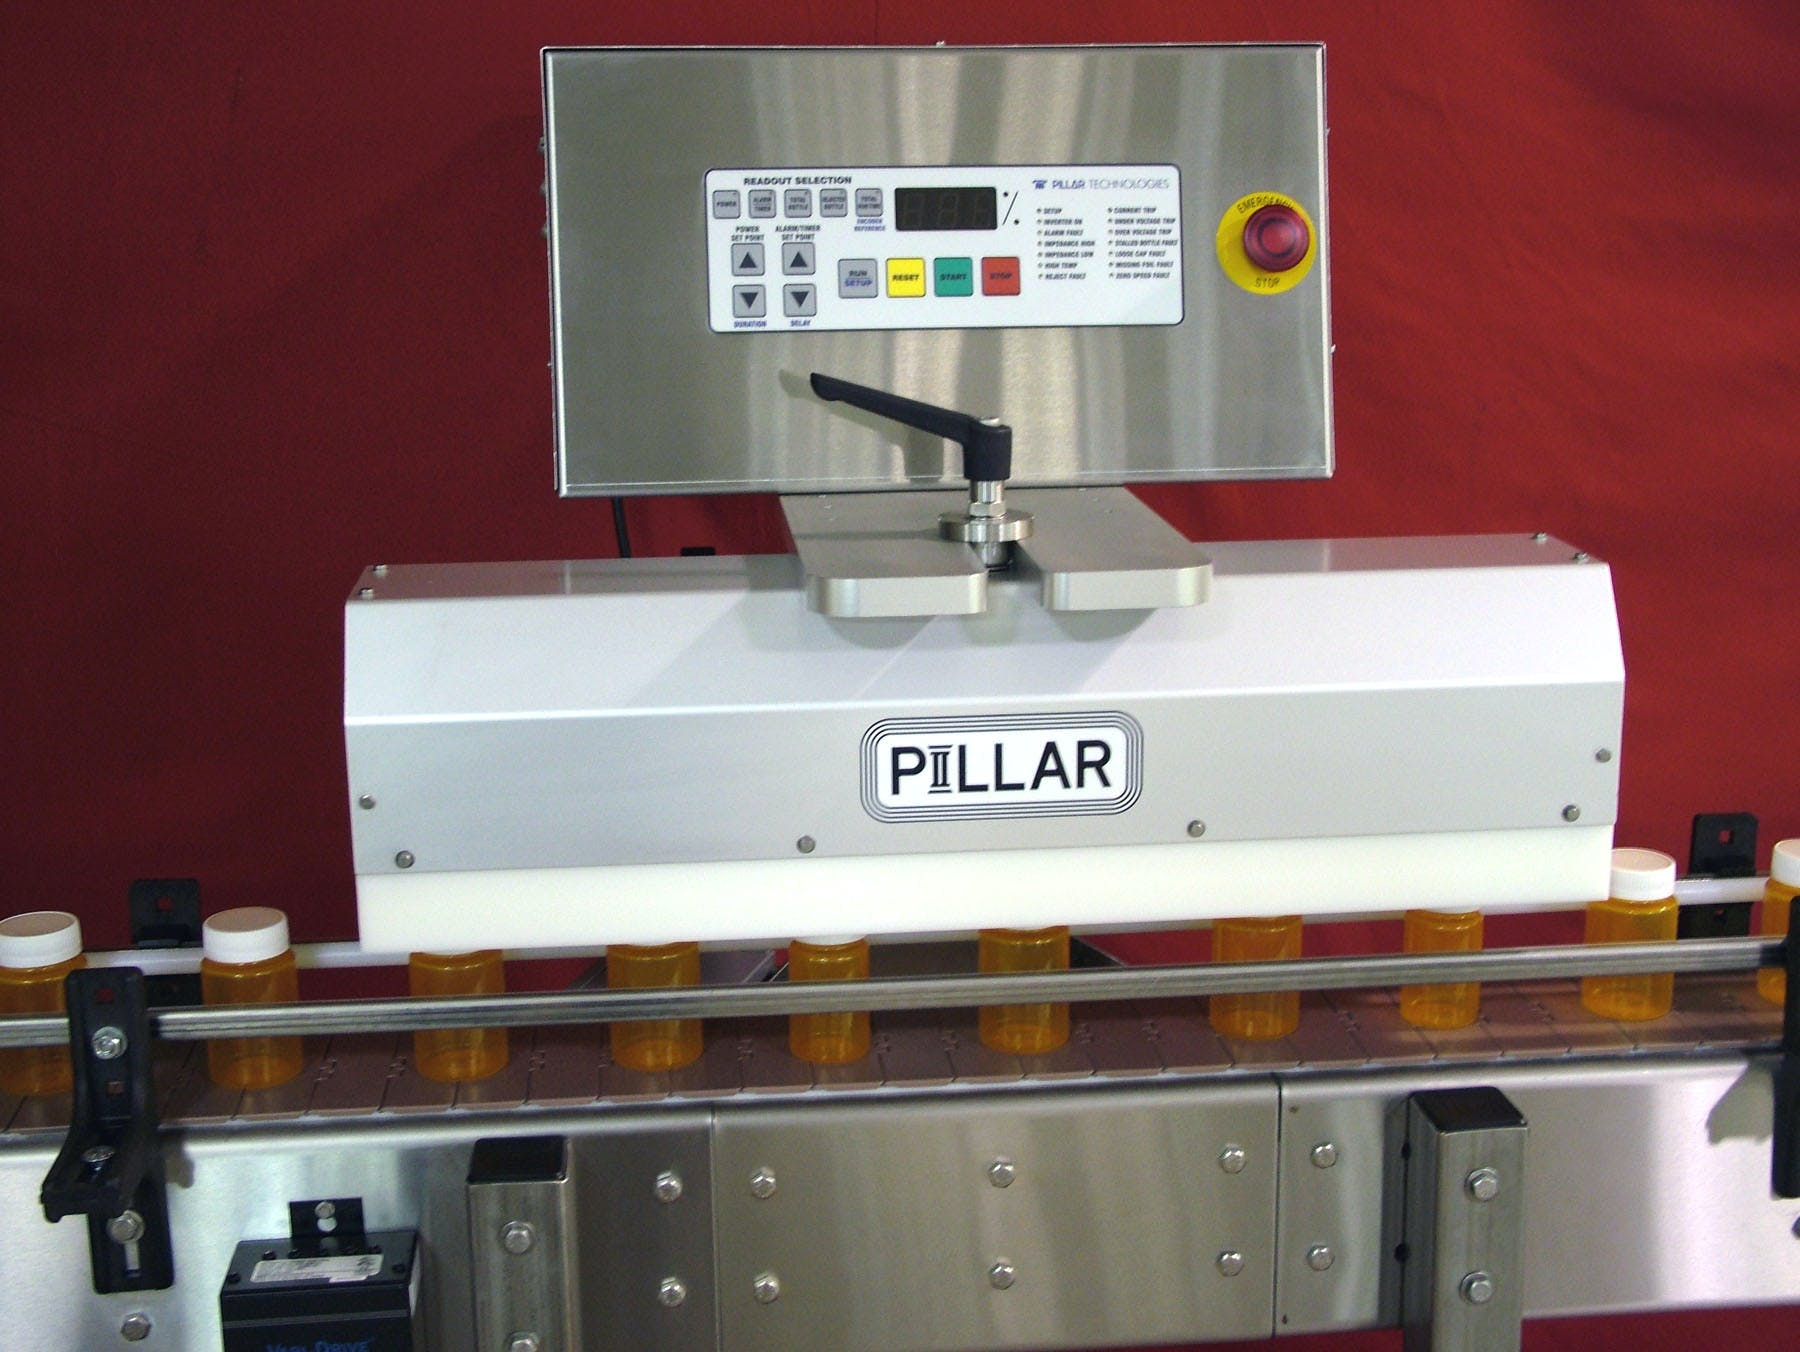 Unifoiler Induction sealer sold by Pillar Technologies